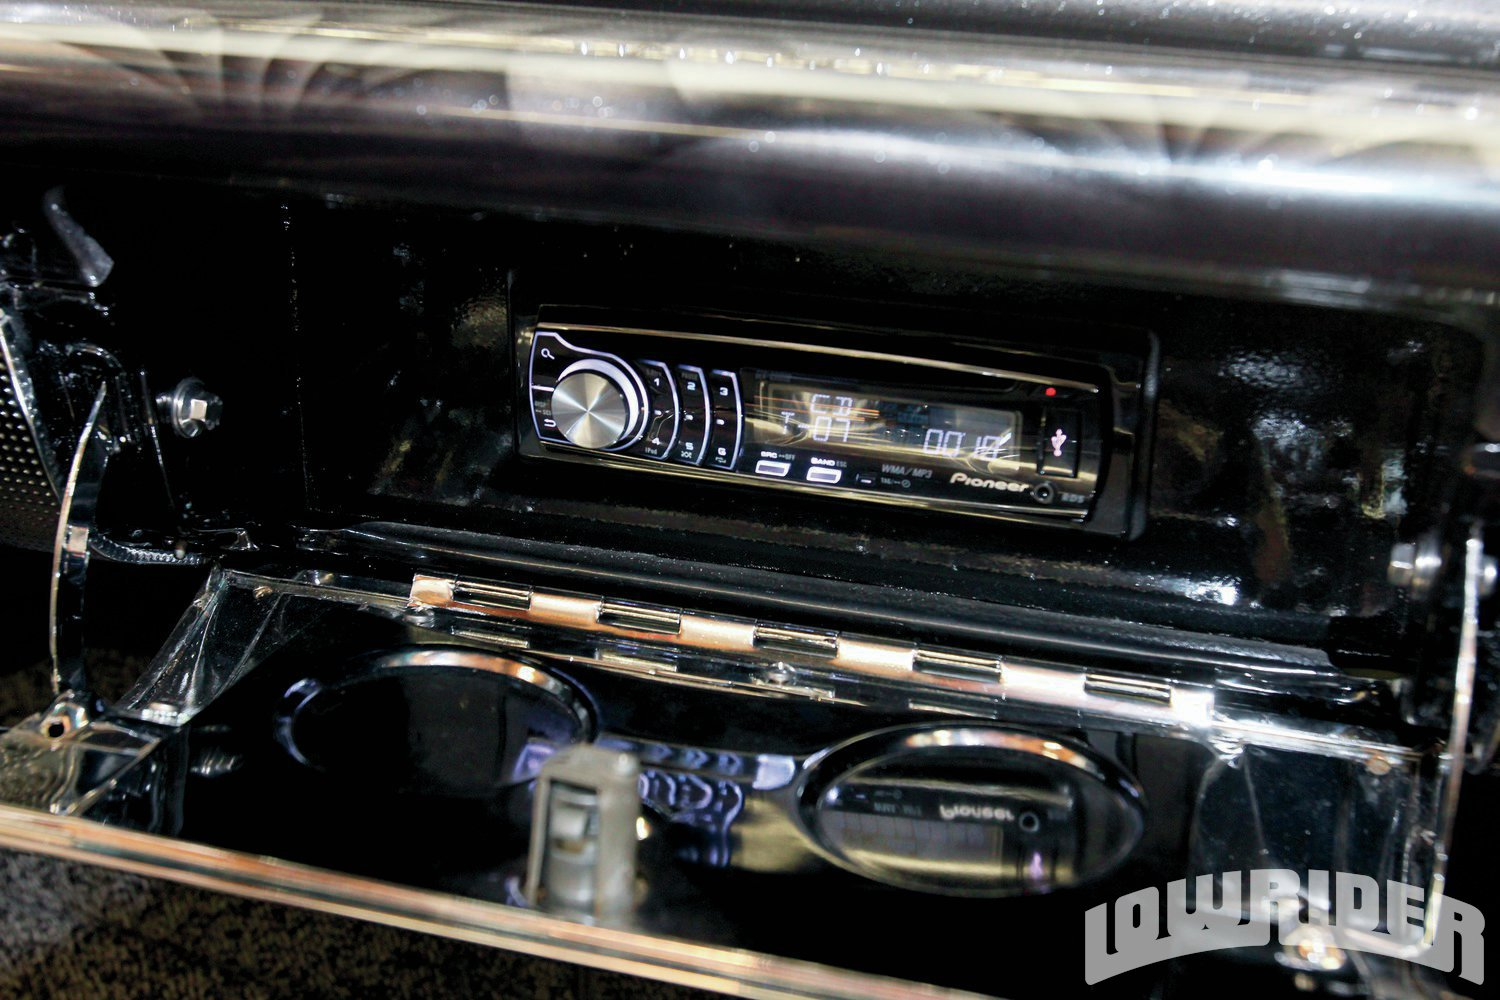 <strong>14</strong>. The Pioneer stereo was stashed in the glove box.